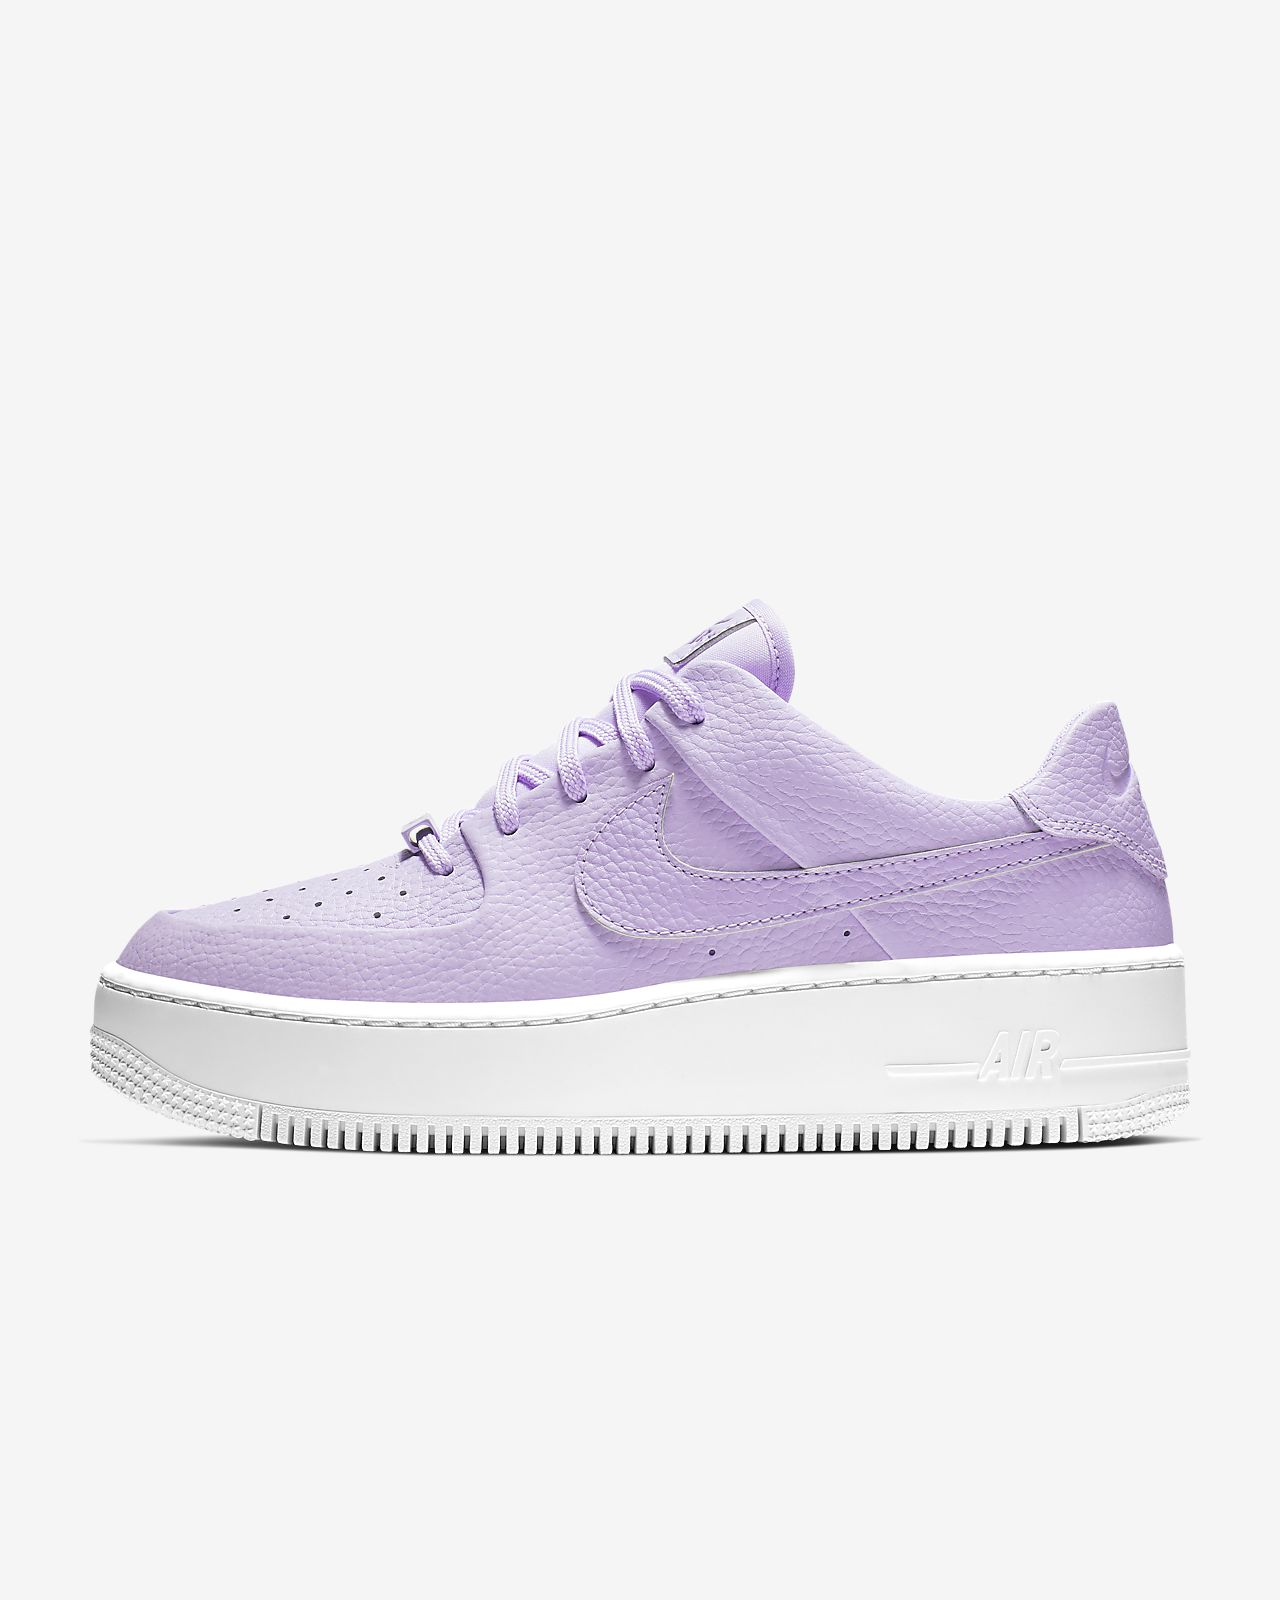 60a21a555 Nike Air Force 1 Sage Low Women s Shoe. Nike.com IE